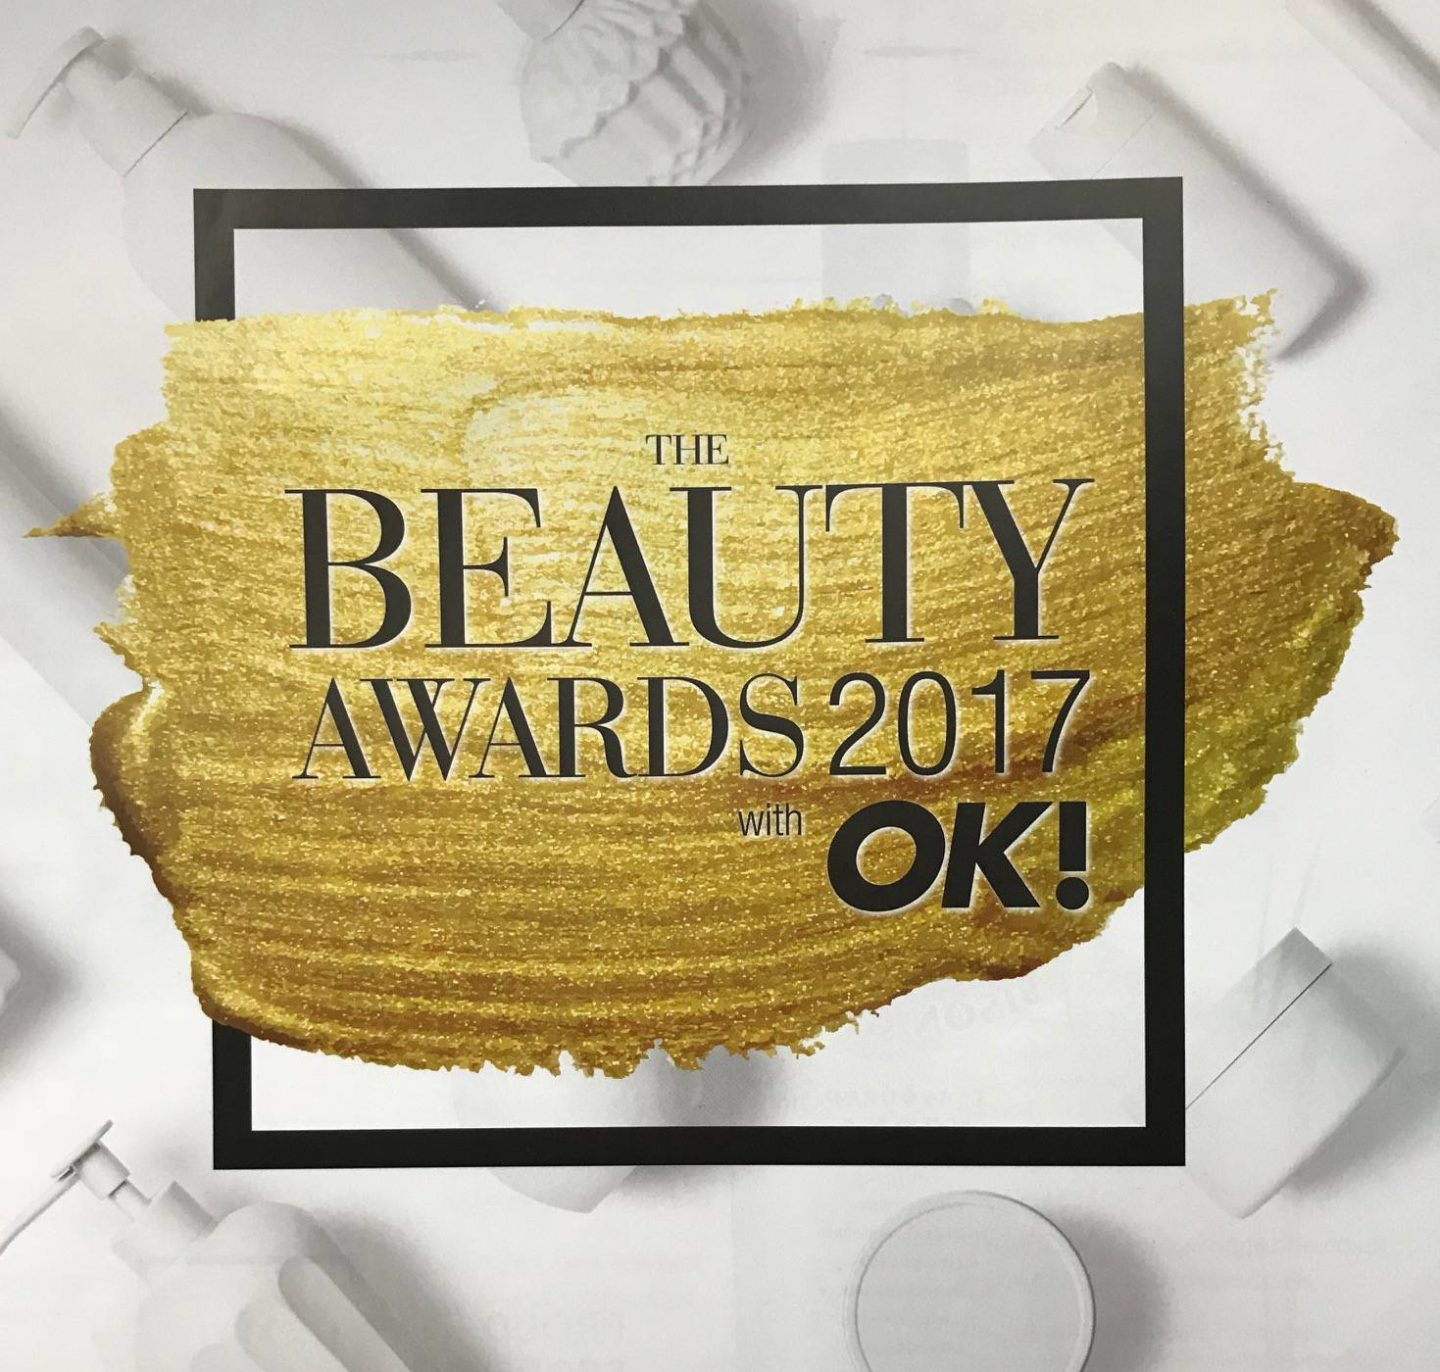 The Beauty Awards 2017 with OK!